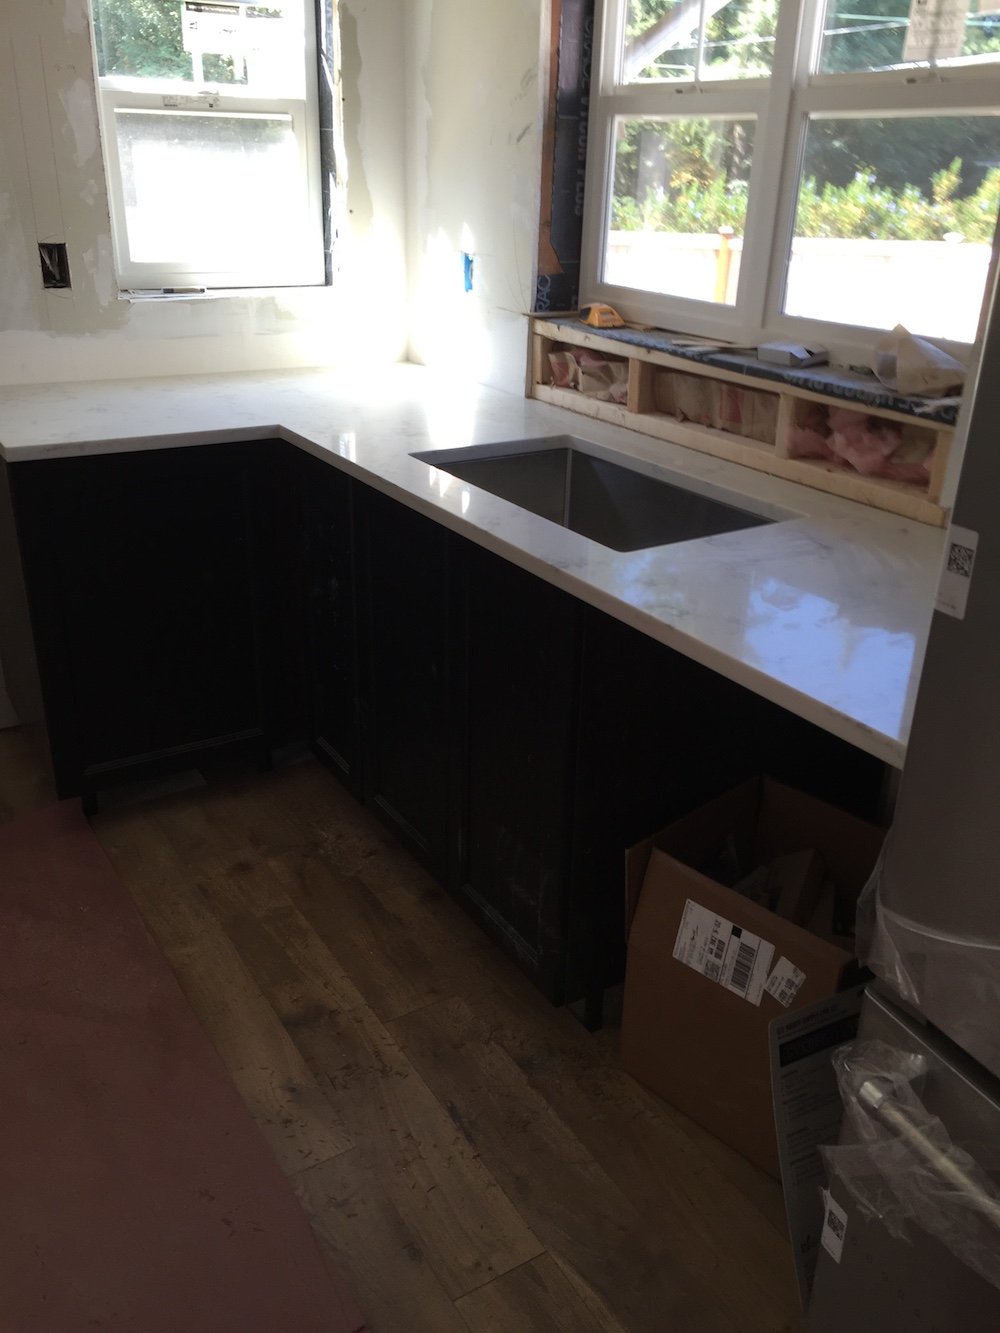 I choose MSI Quartz, Carrara Grigio, for the countertops. I wanted light countertops but did not want marble.